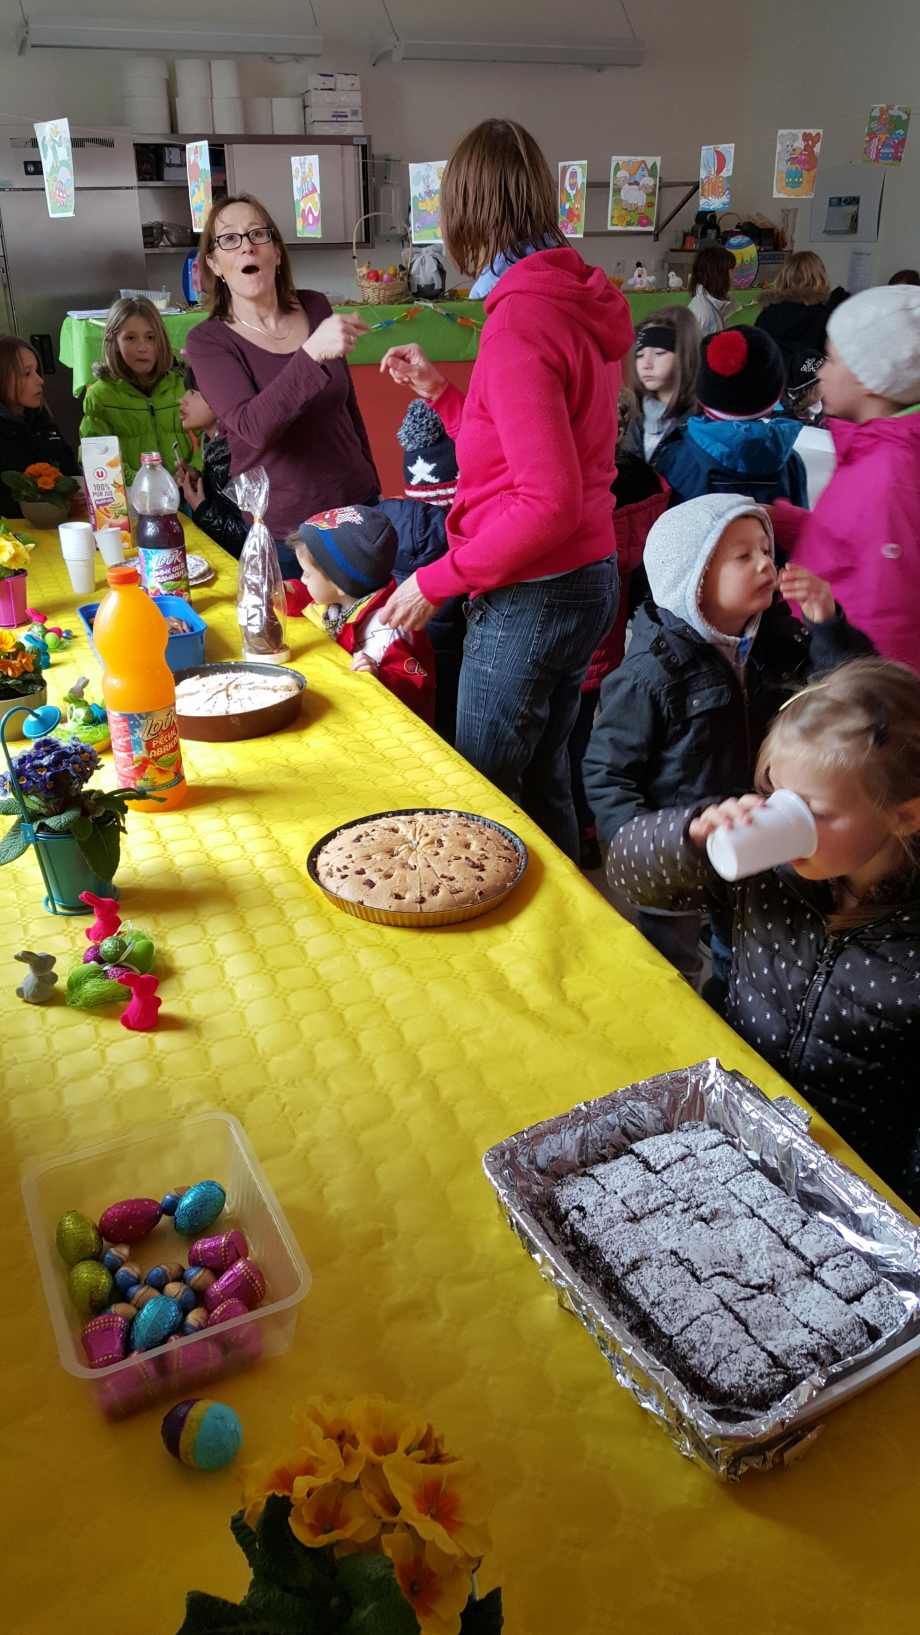 Repas paques-25-3-16-All7.jpg